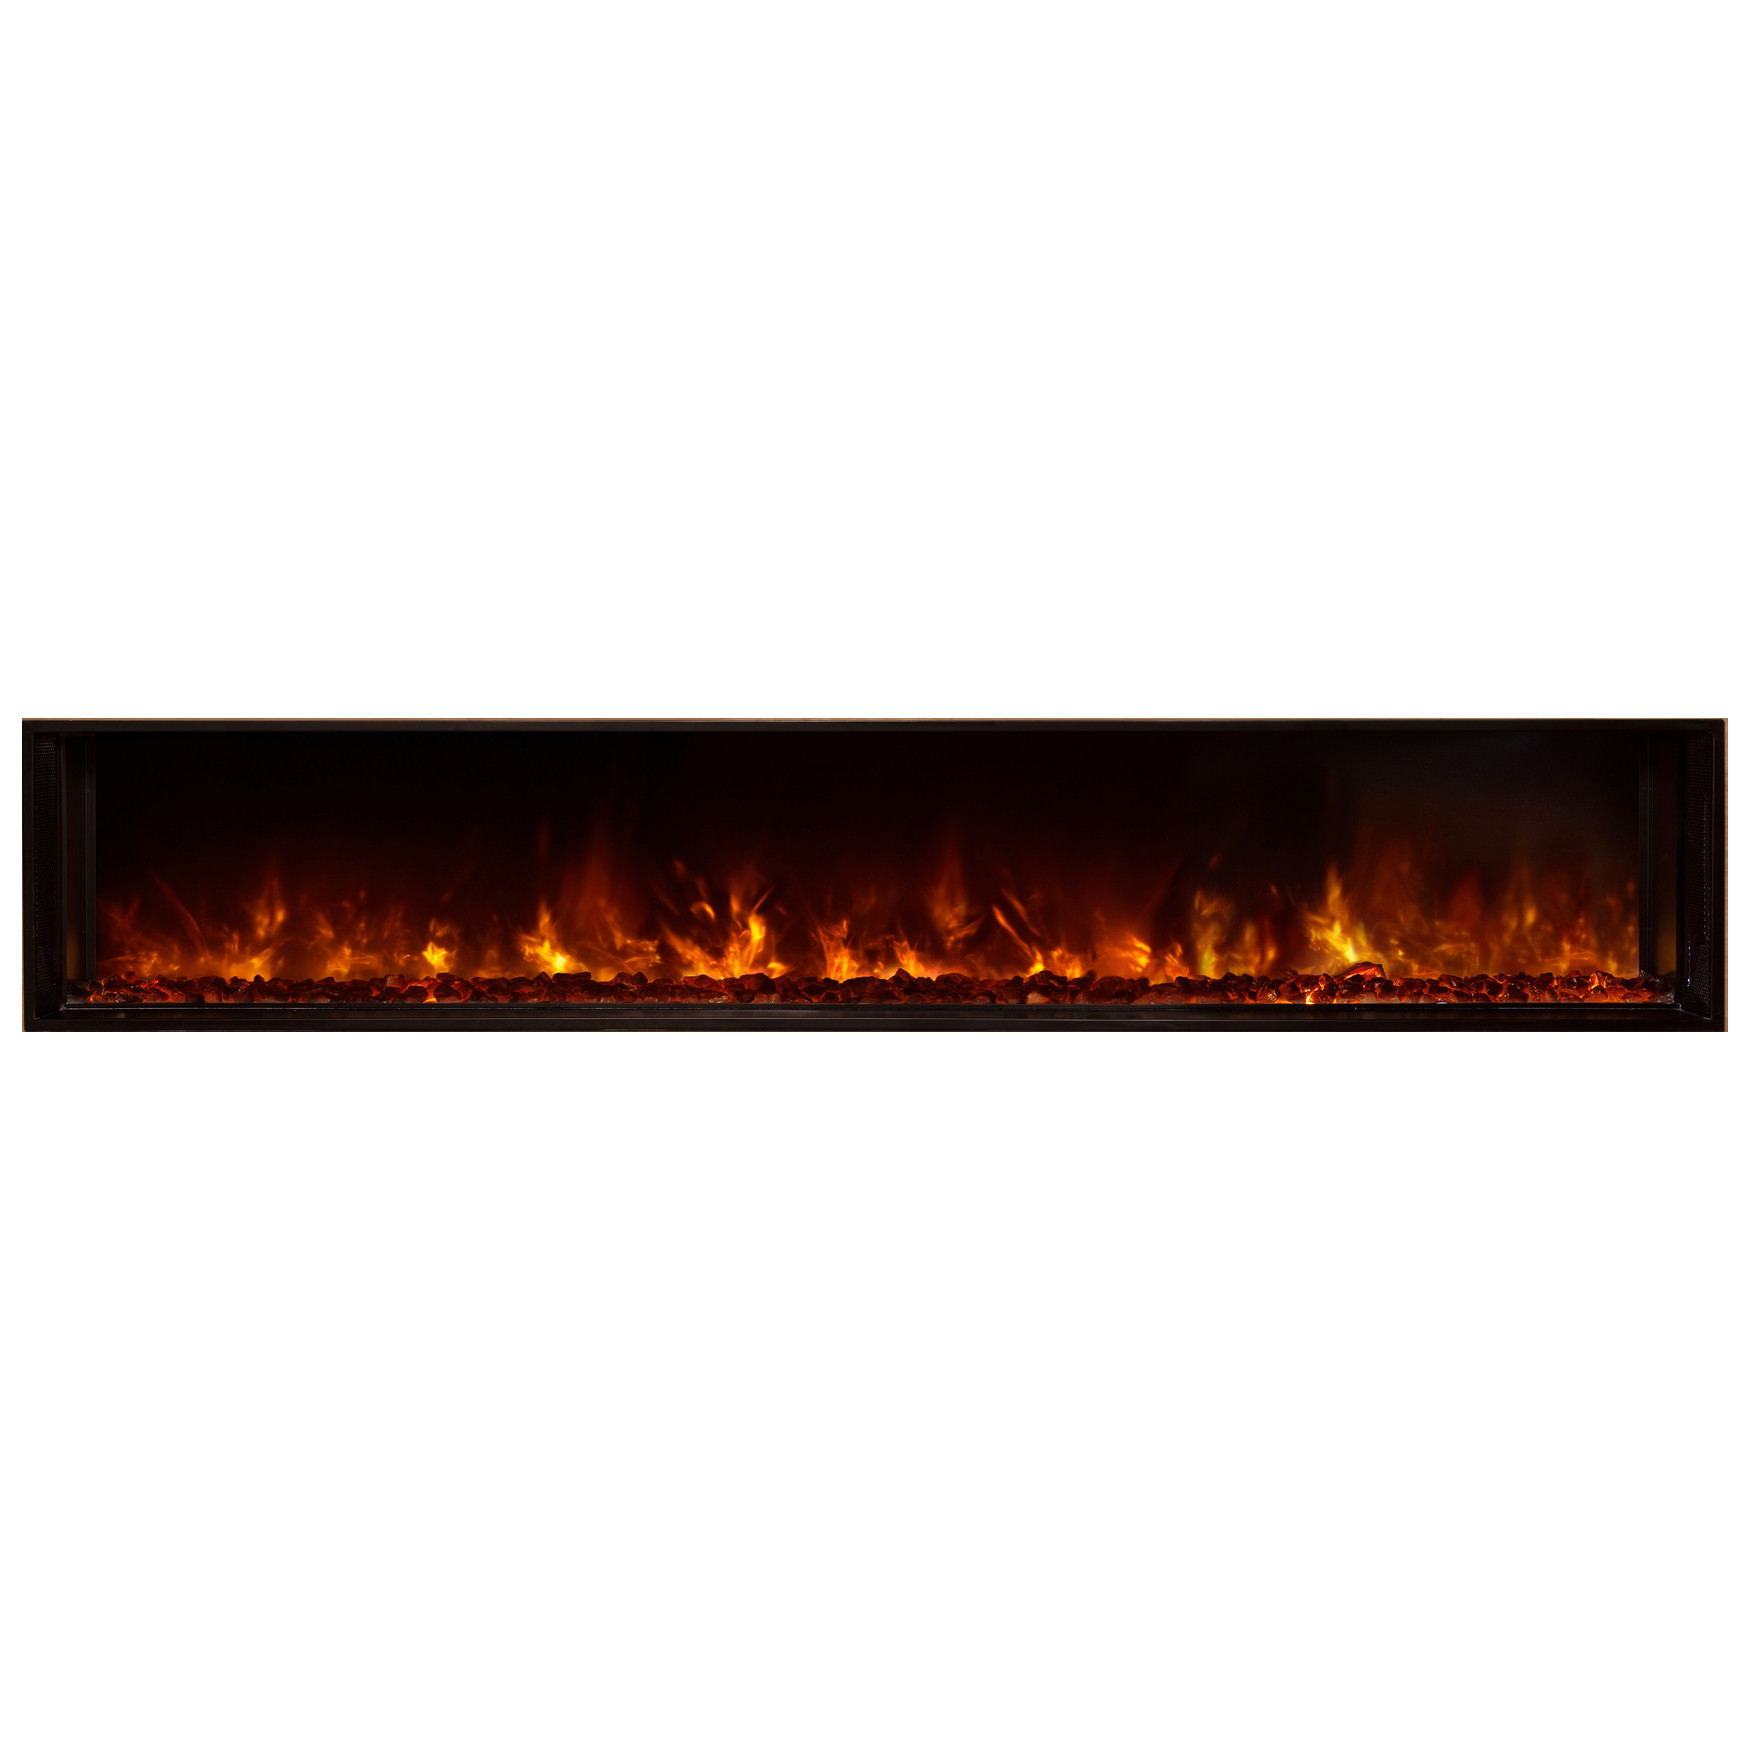 Modern Flames 80 Lfv80 15 Sh Landscape Fullview Built In Electric Fireplaces